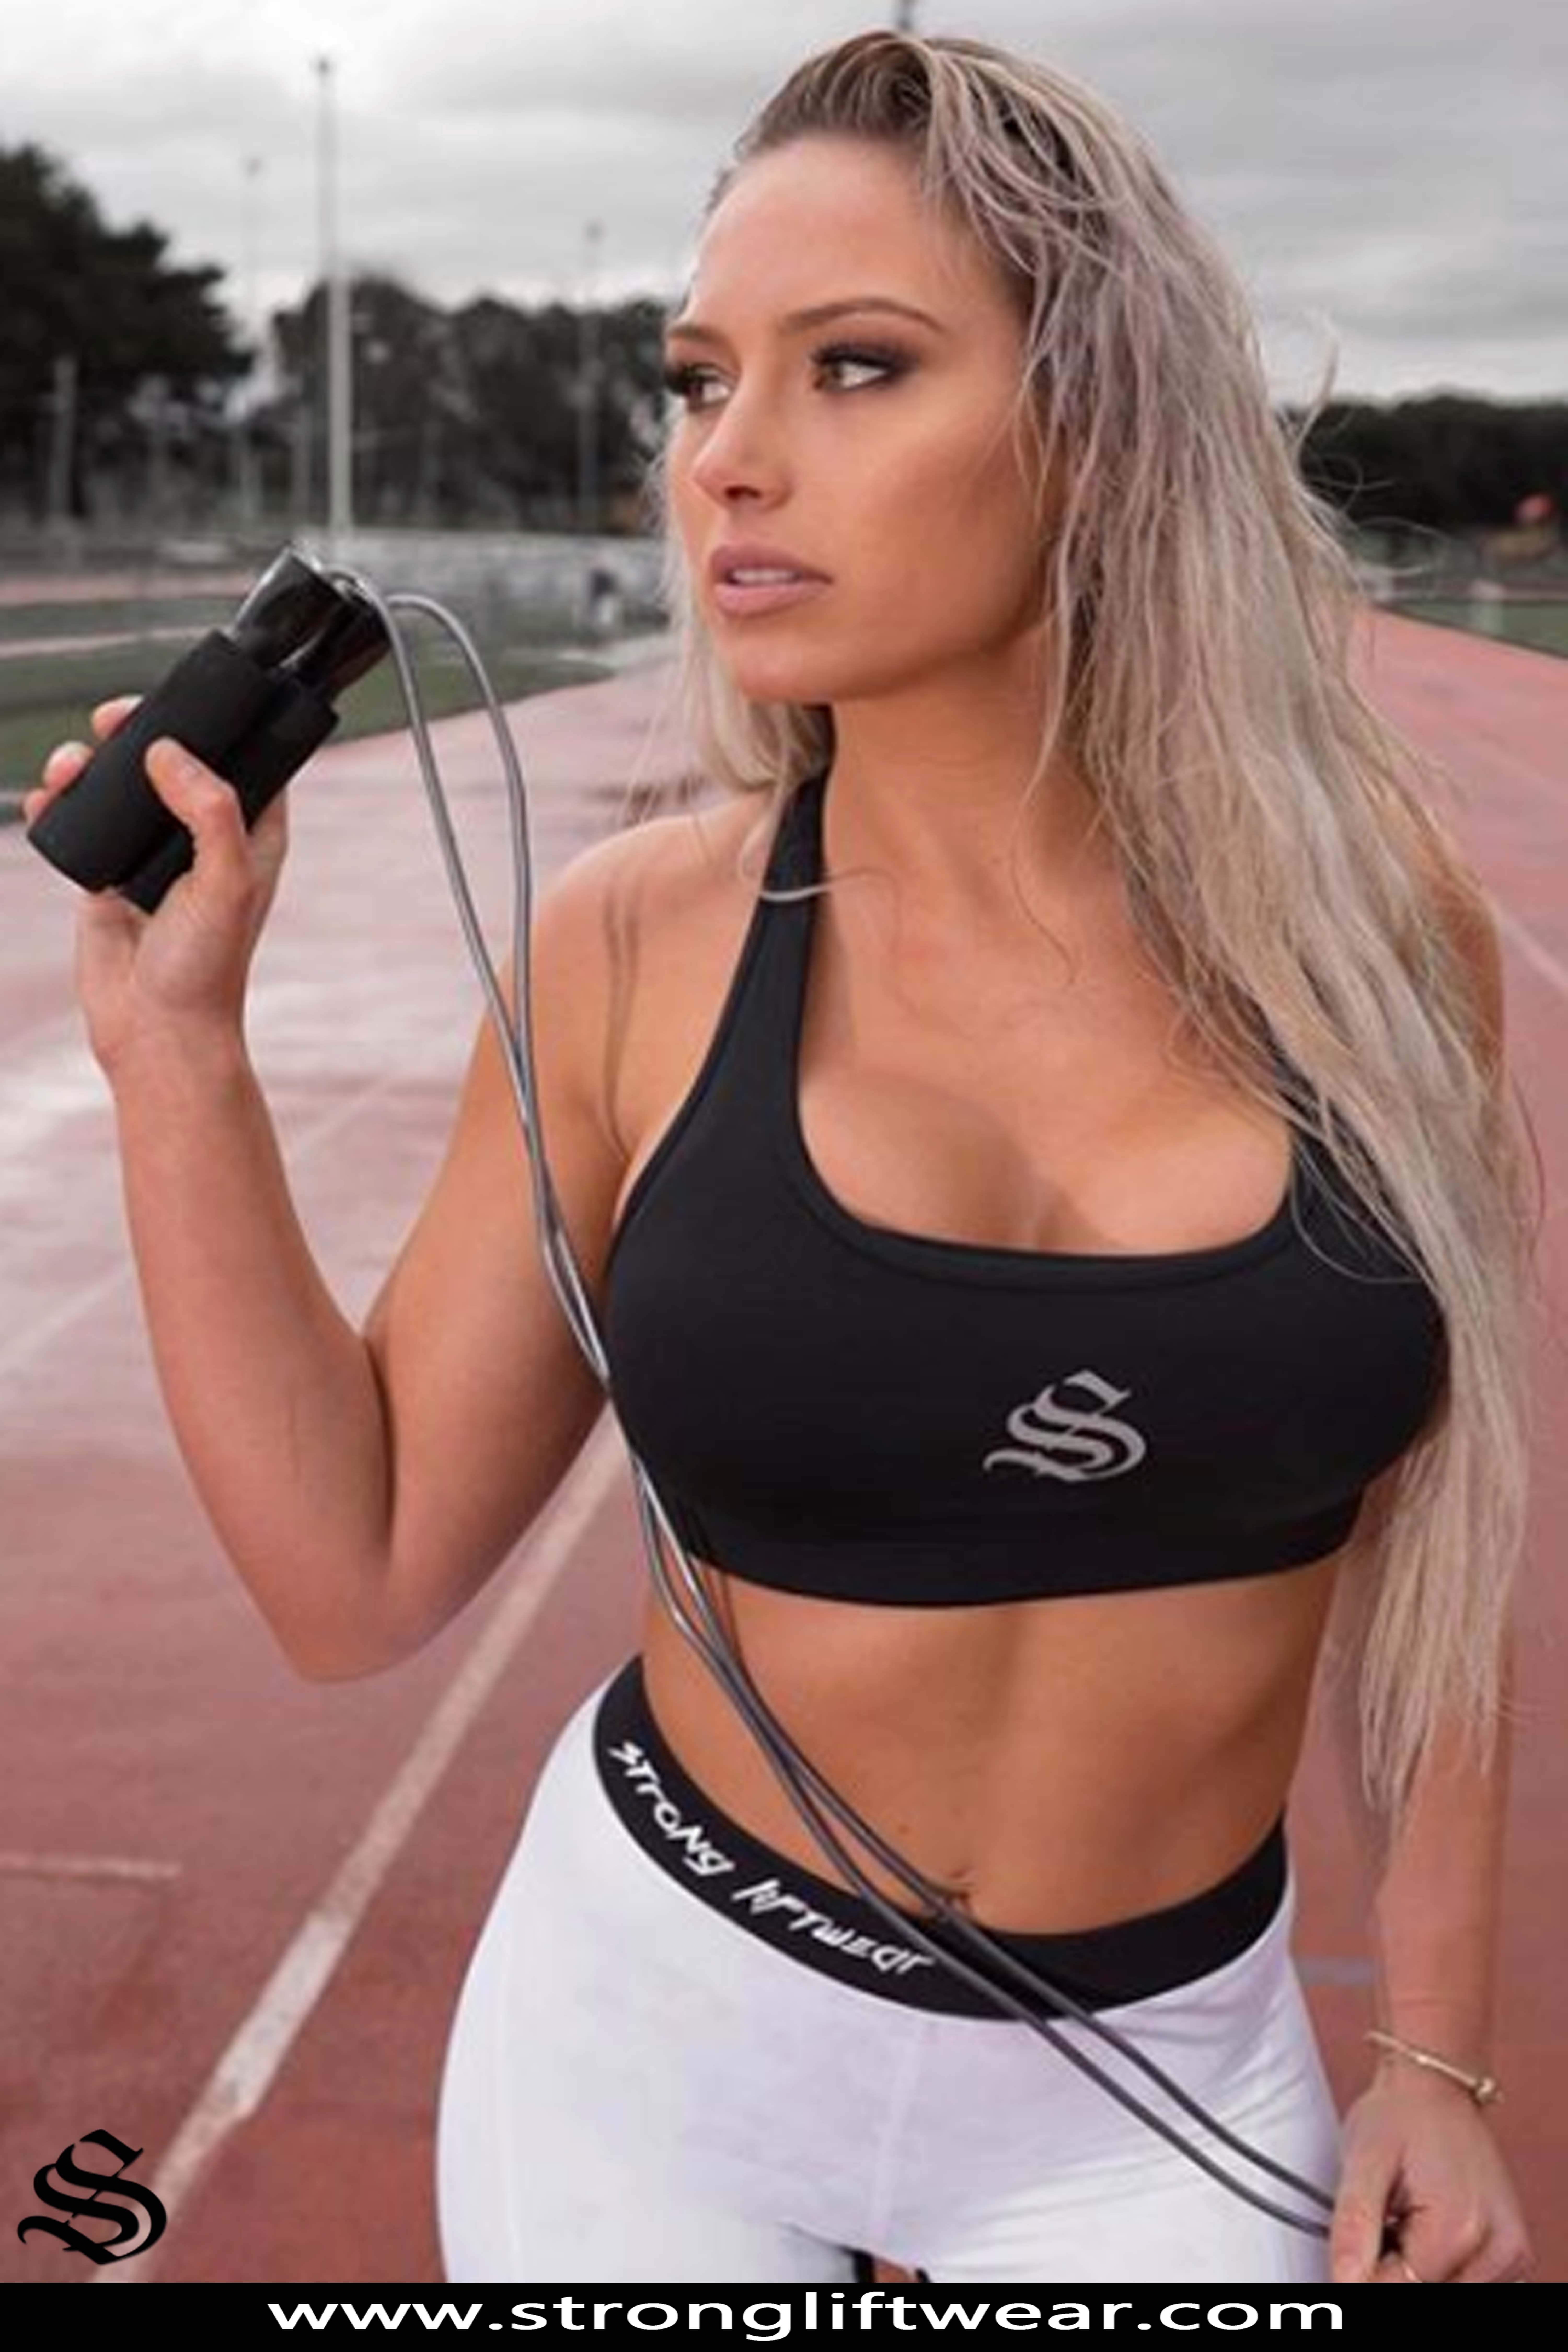 519fe288ffb5b Womens Sport Bra - Essential Racer- Black │gym wear │fitness wear │fitness  clothing │fitness │outfits │workout dress │gym outfits │workout outfits ...